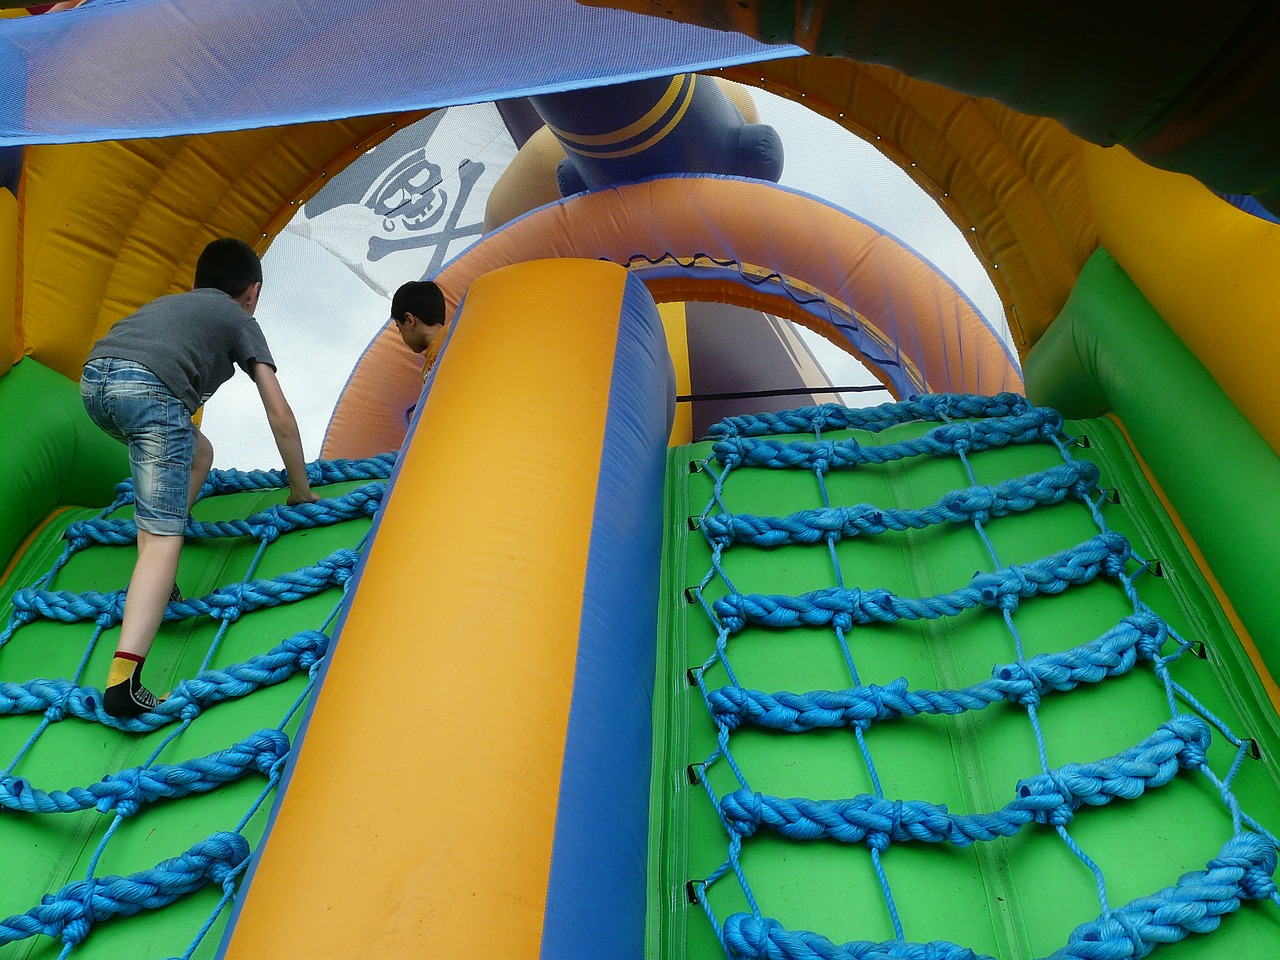 bouncy castle insurance